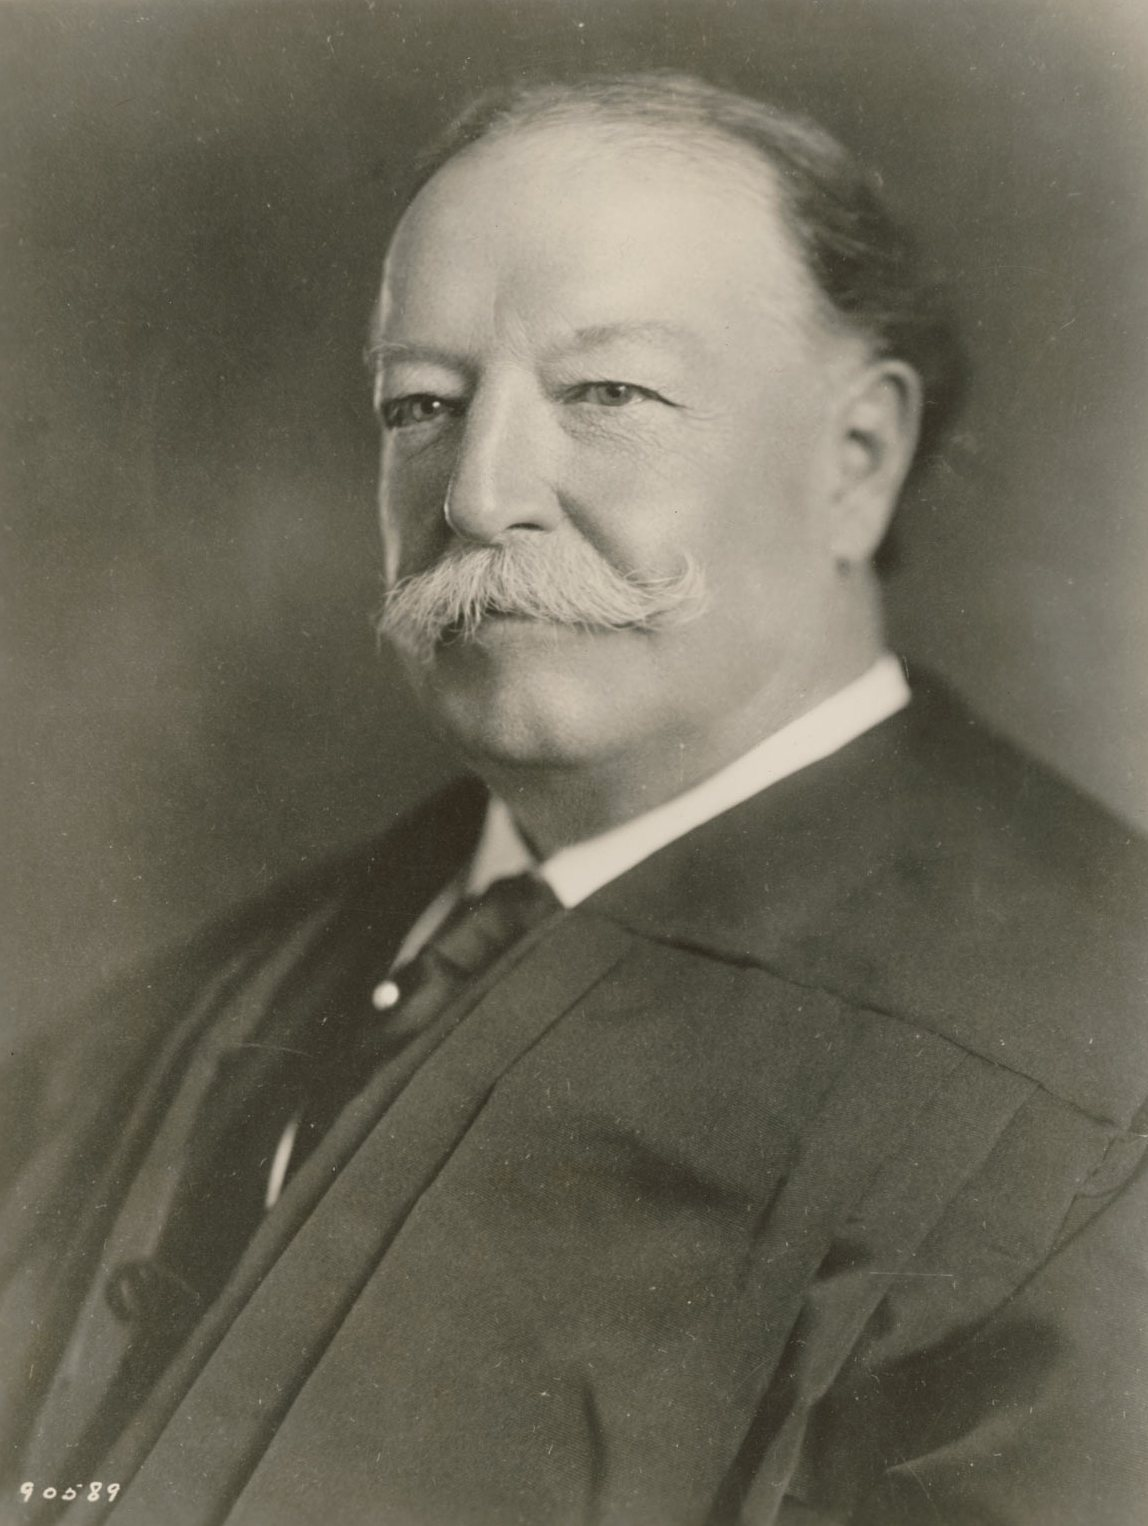 ファイル william howard taft as chief justice scotus jpg wikipedia